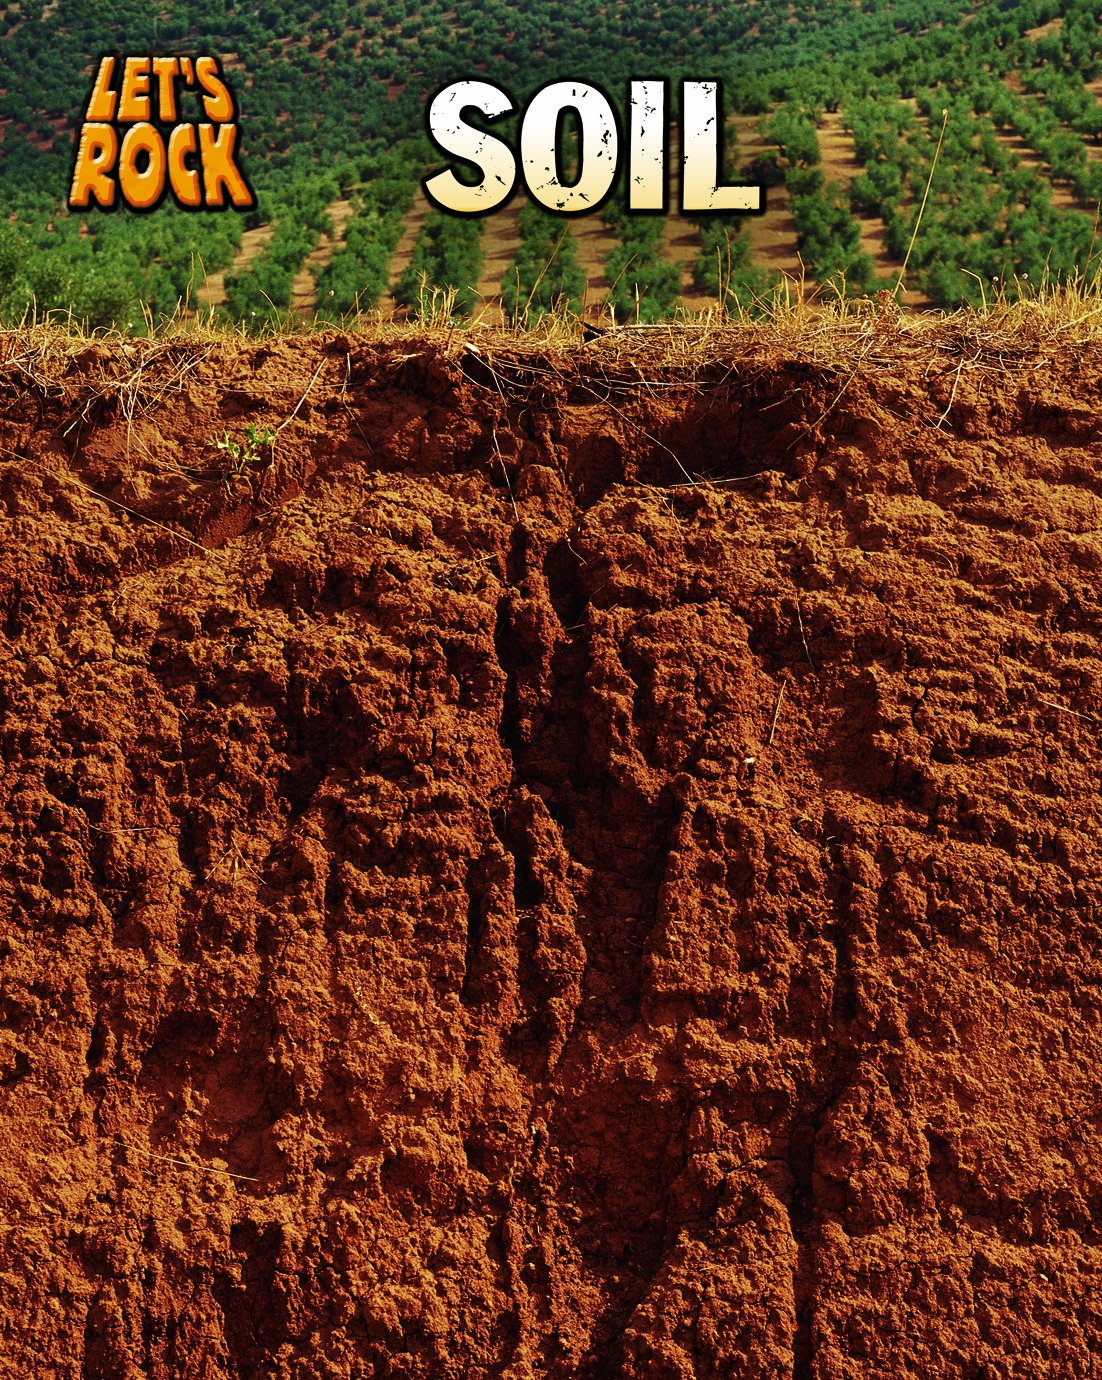 Soil (Let's Rock)